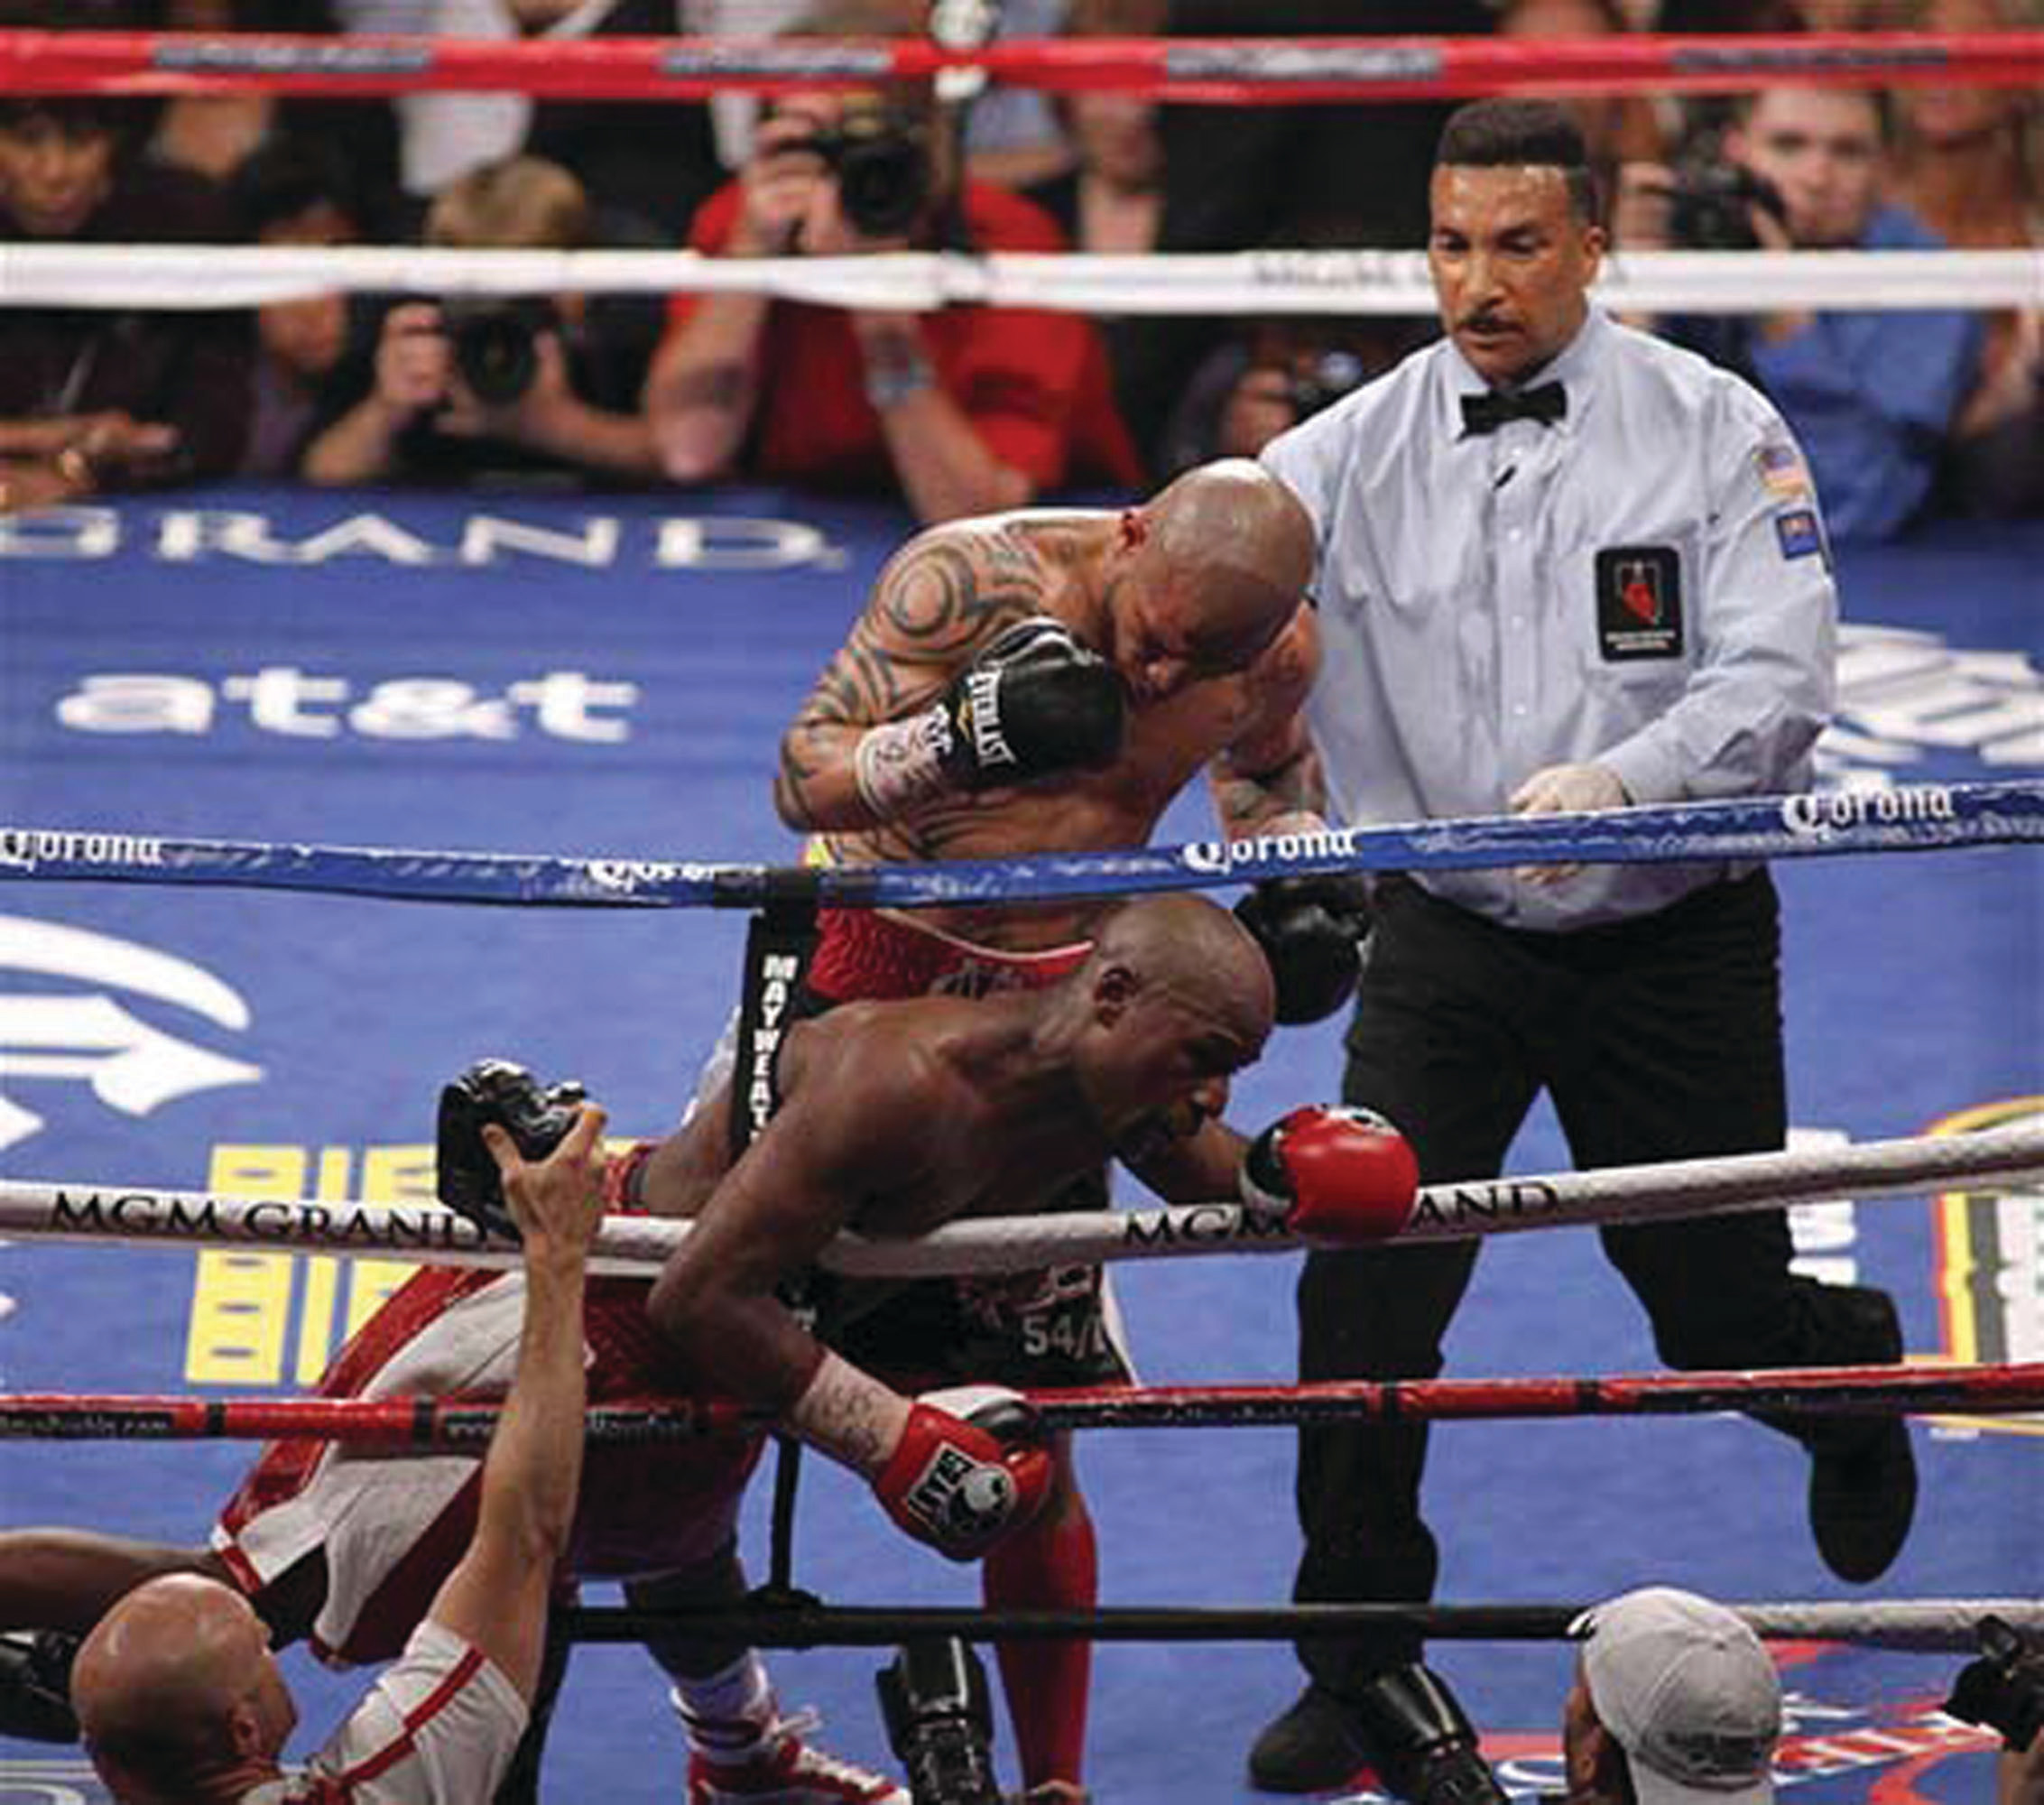 Internationally known boxing official Tony Weeks is shown in the ring with Floyd Mayweather and Miguel Cotto. Floyd Mayweather won the bout on May 5, 2012, and the Boxing Association's light middleweight title.